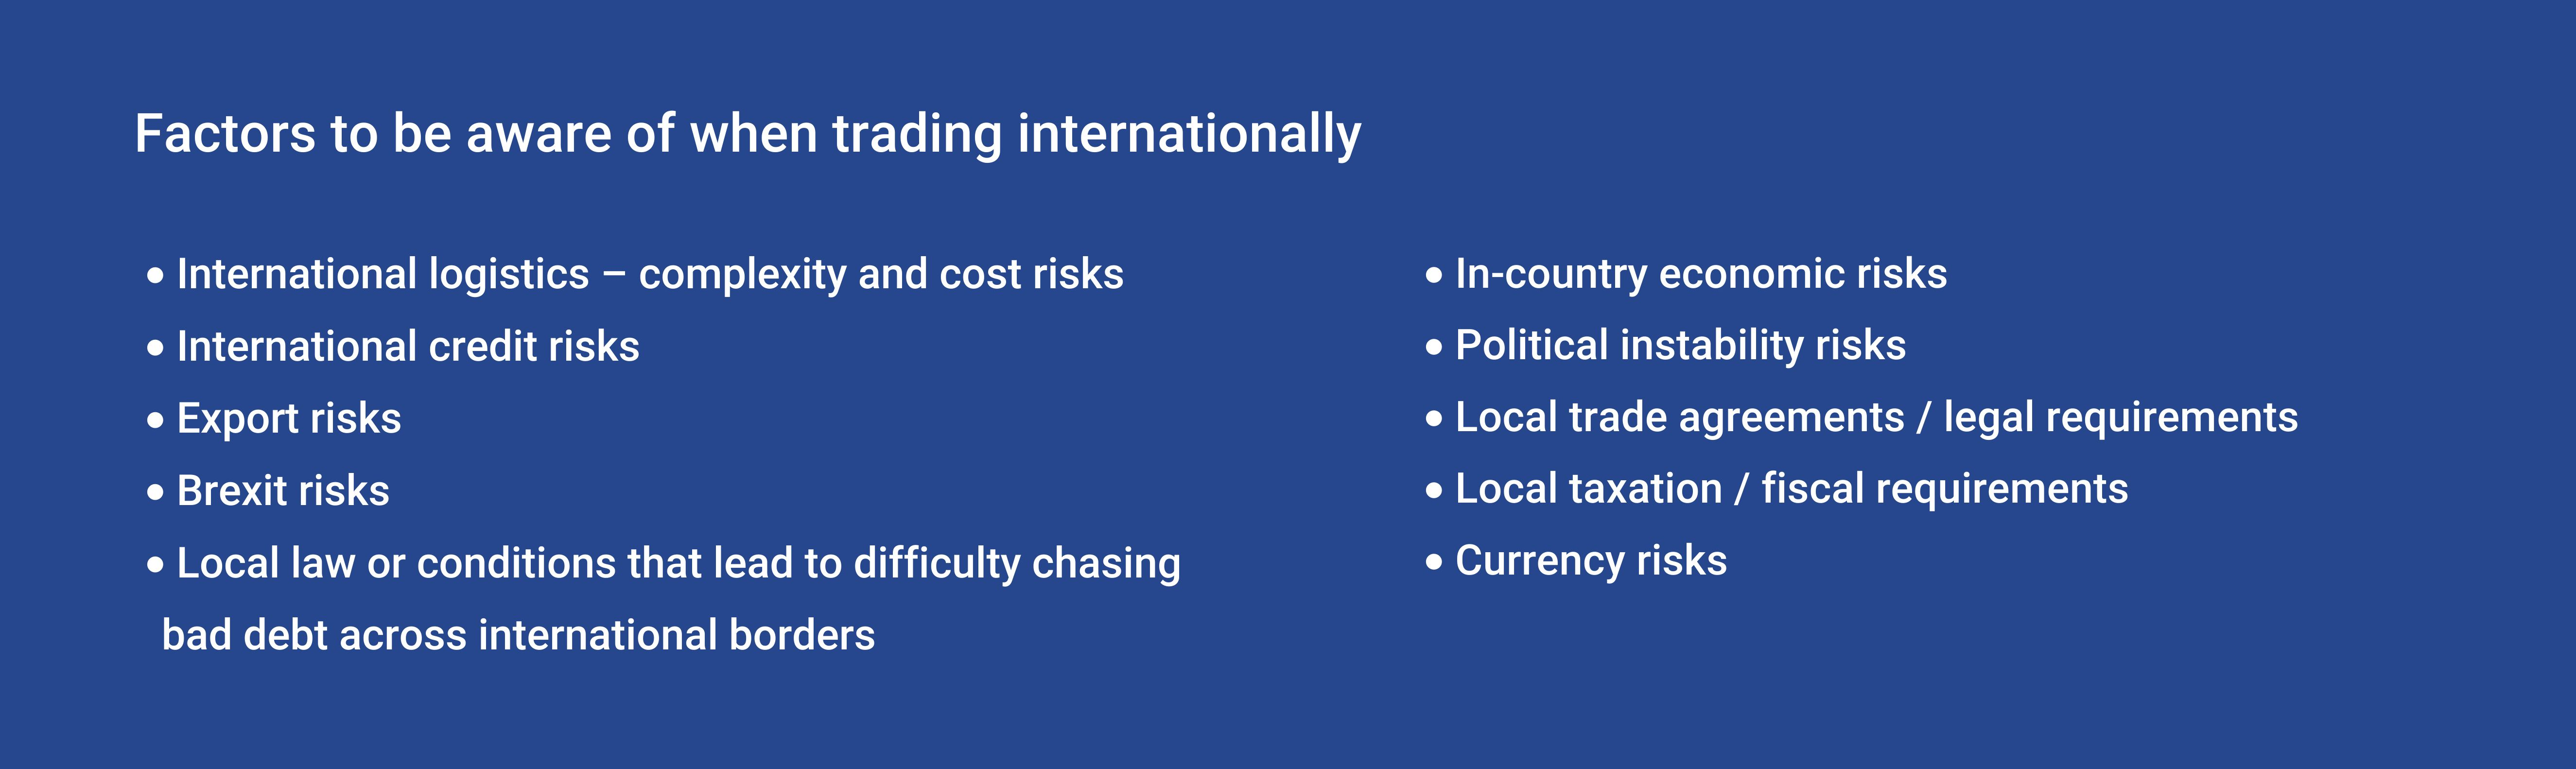 Factors to be aware of when trading internationally